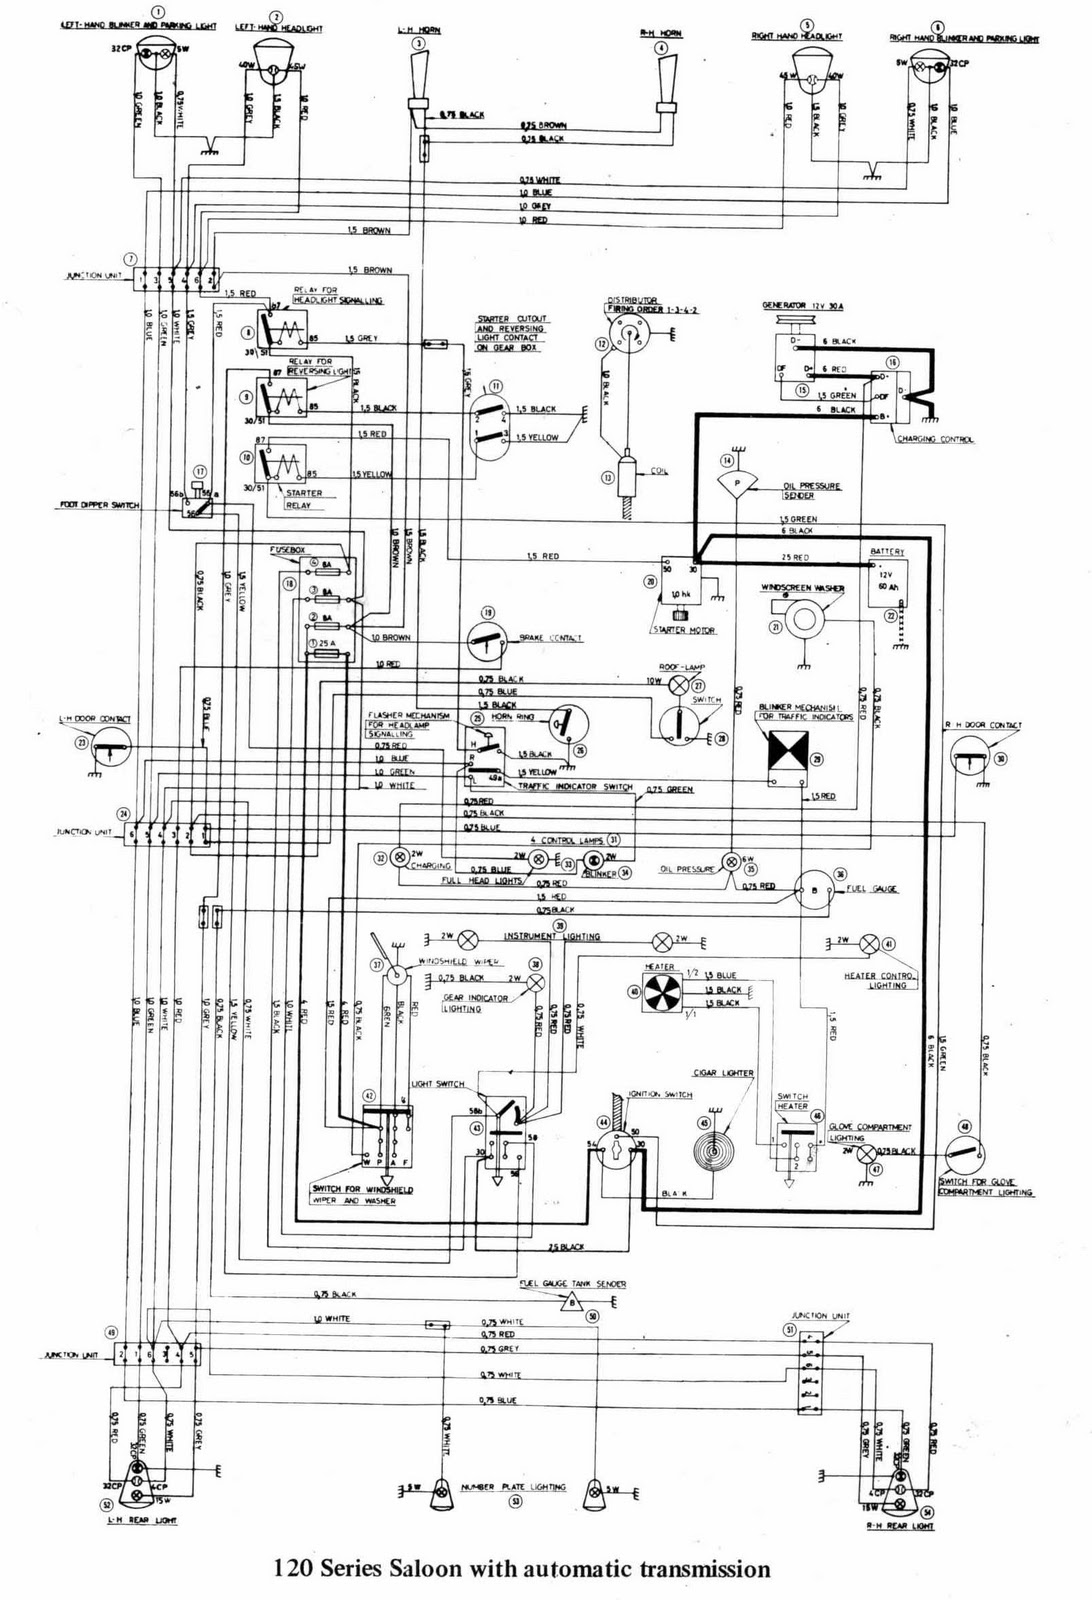 volvo truck wiring wiring diagram  semi volvo truck ecu wiring wiring diagram experts2007 volvo vn ecm wiring schematic wiring diagram 2007